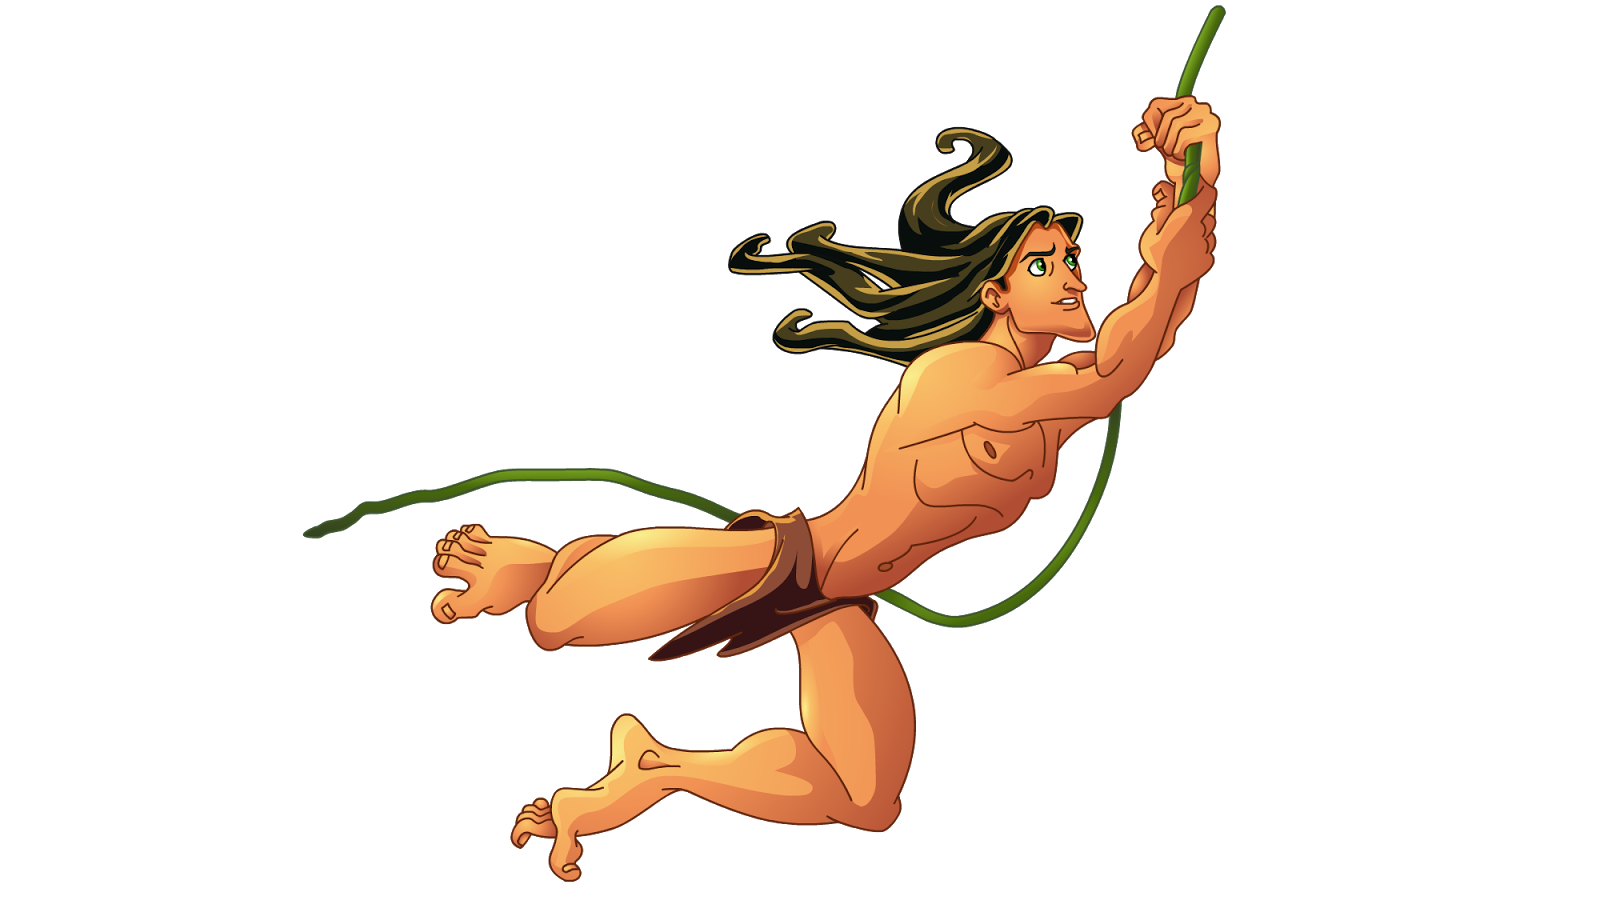 Tarzan Disney Vsdebating Wiki Fandom Powered By Wikia